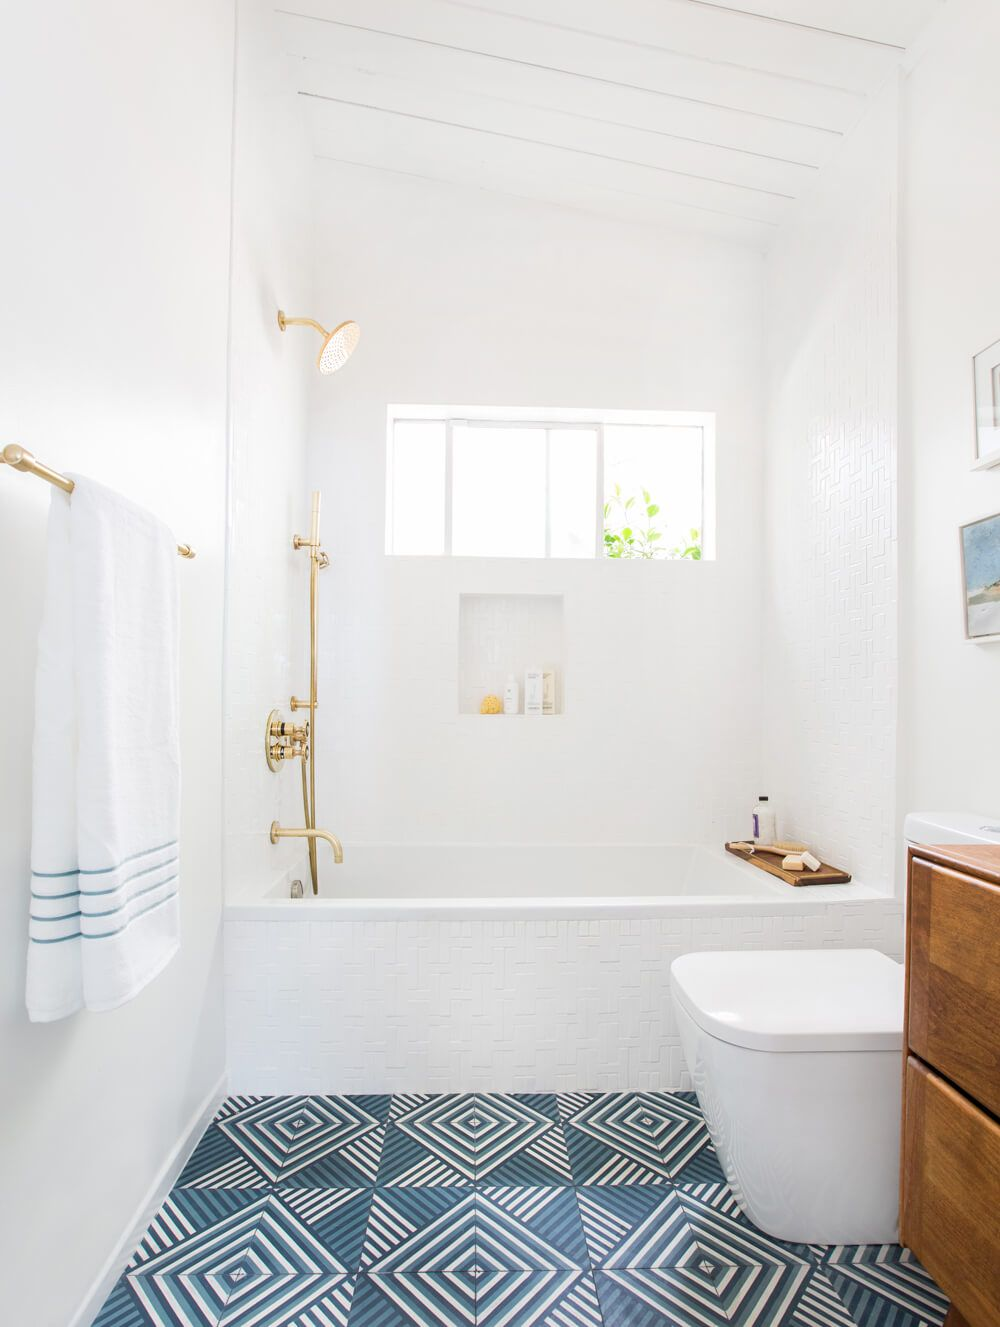 17 Incredibly Cool Bathrooms for Every Style | Badezimmer, Bäder und ...